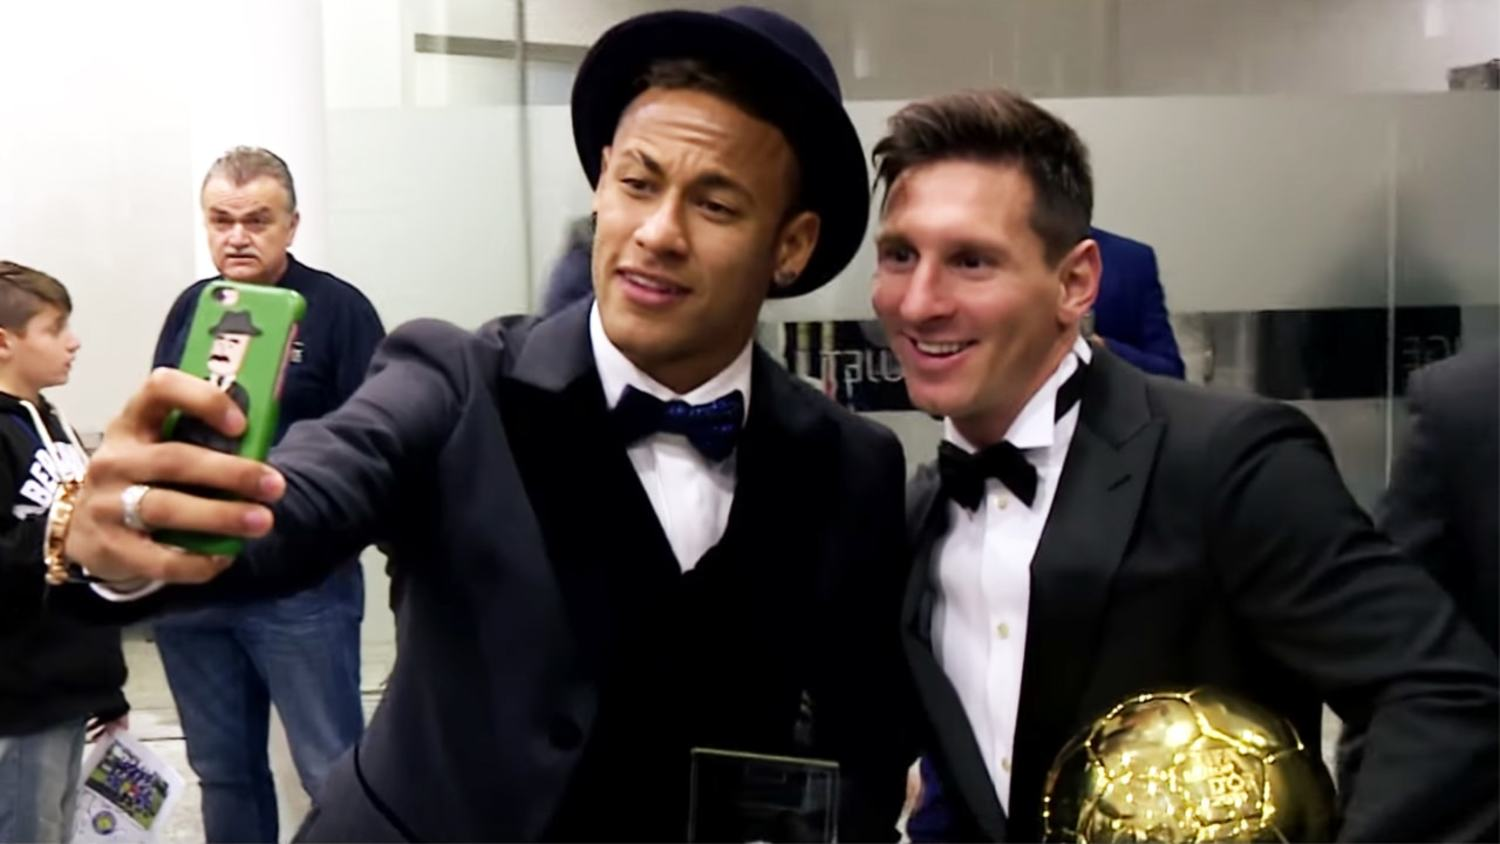 FC Barcelona Release Video of Messi and Neymar's Football Bromance